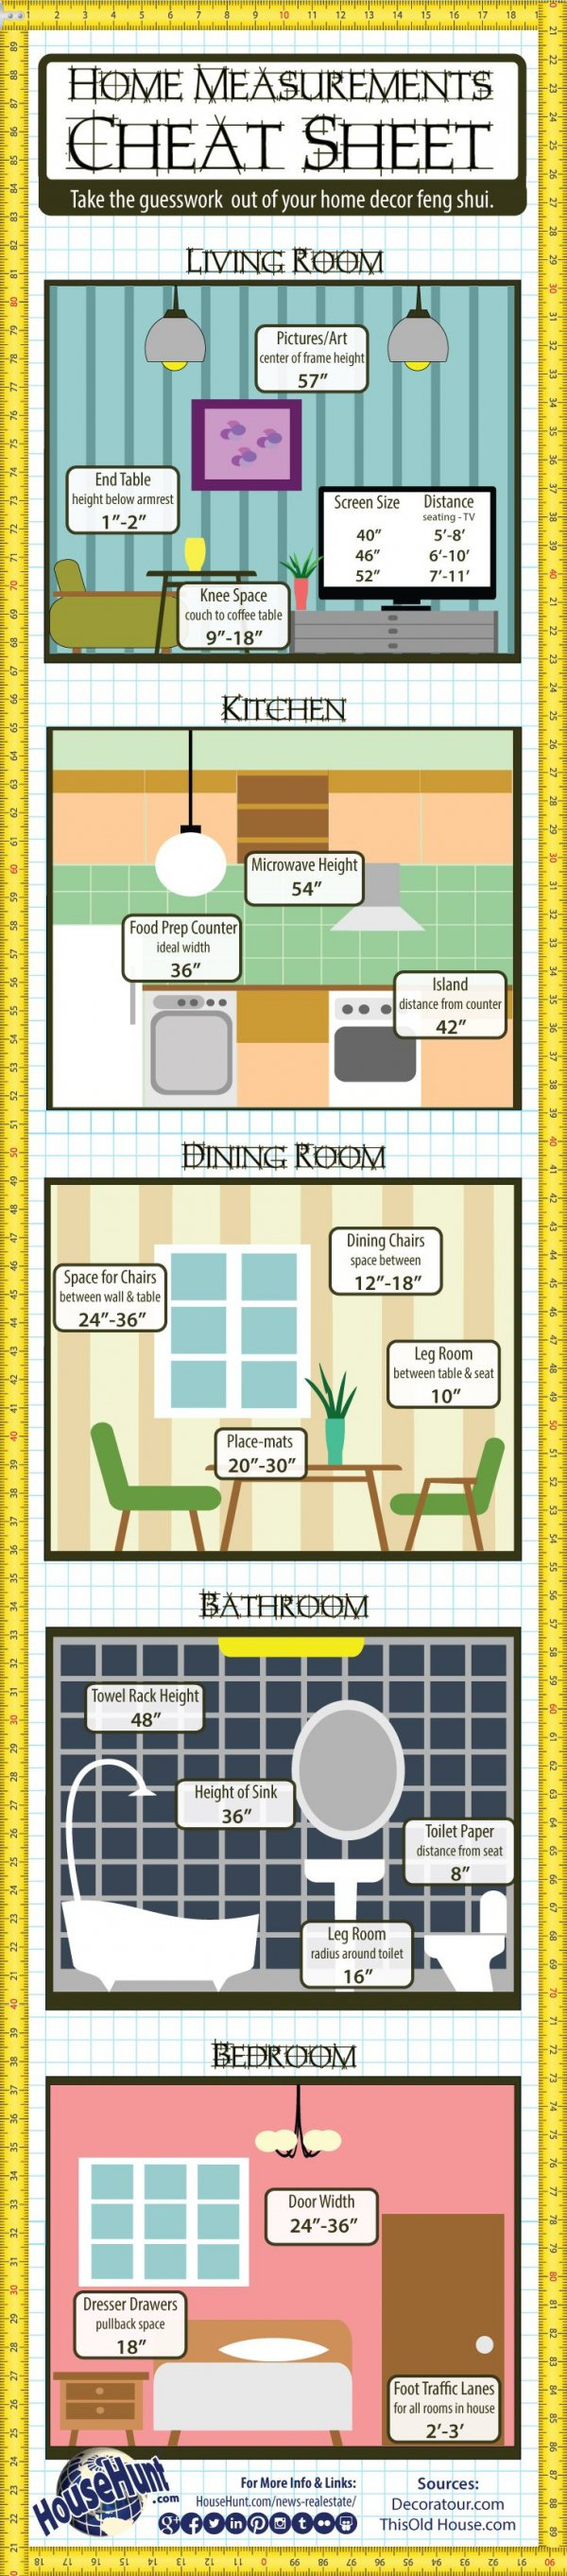 Home Measurements Cheat Sheet